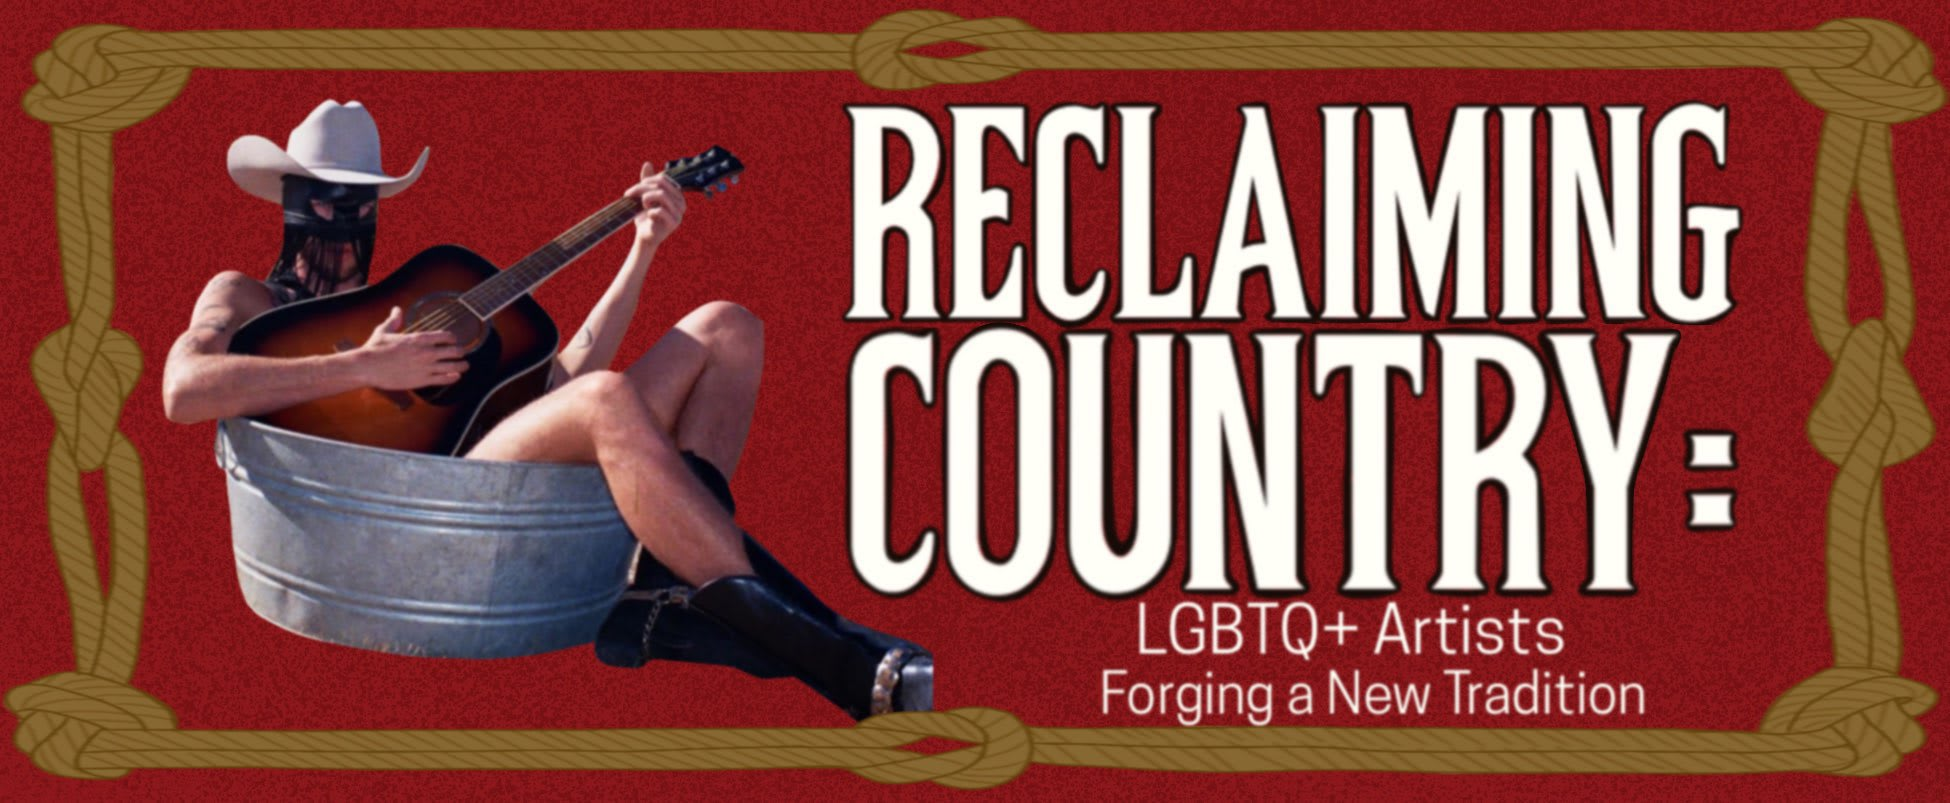 Reclaiming Country: LGBTQ+ Artists Forging A New Tradition